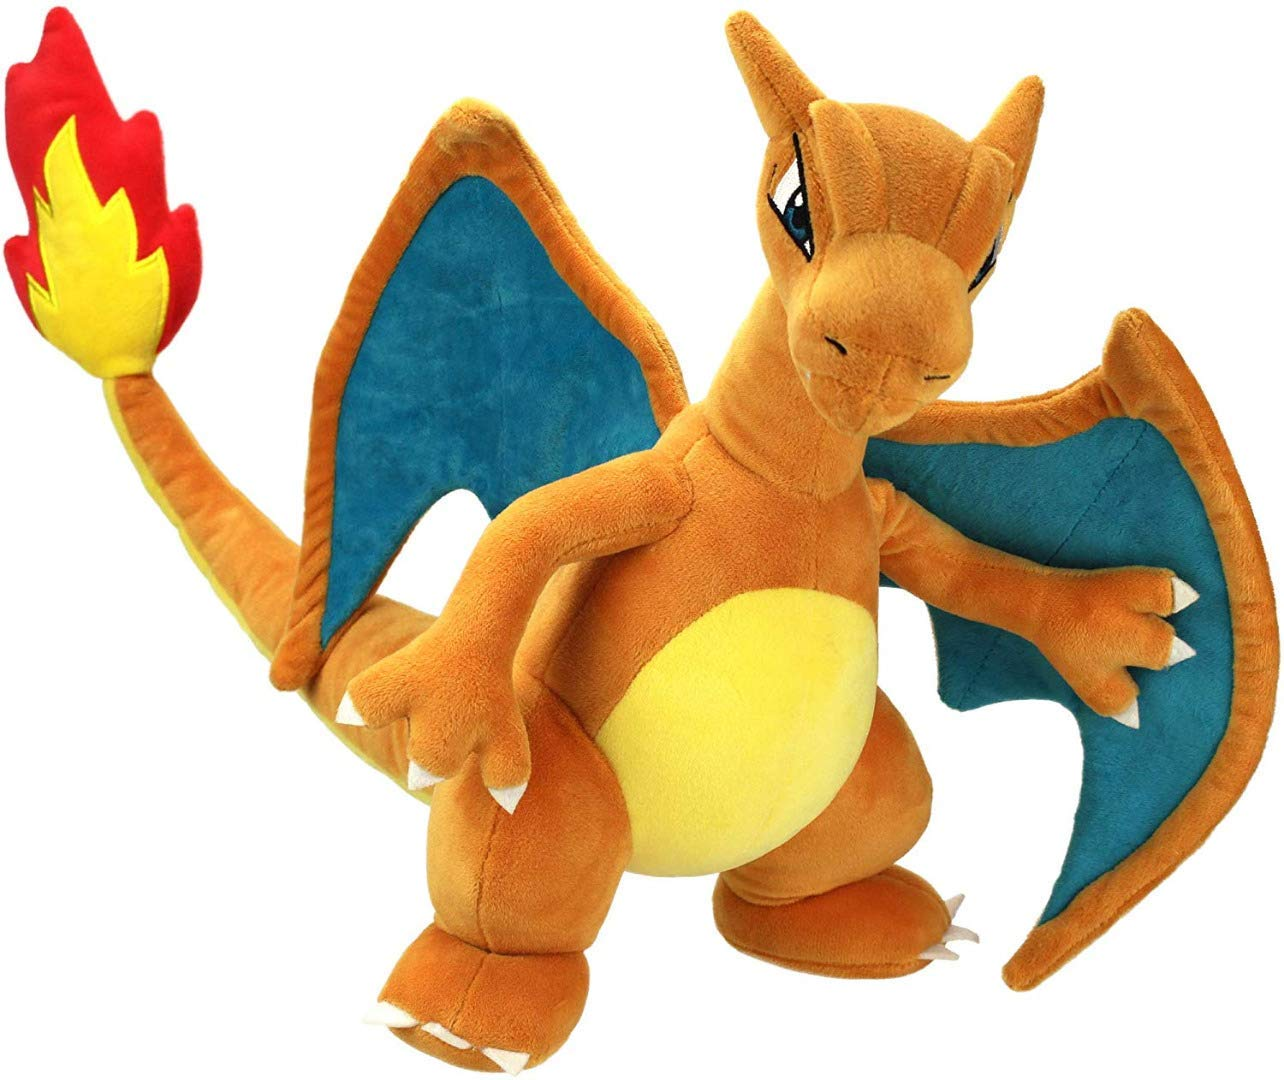 10 Pokemon gifts for kids you can buy on Amazon. Charizard plush.